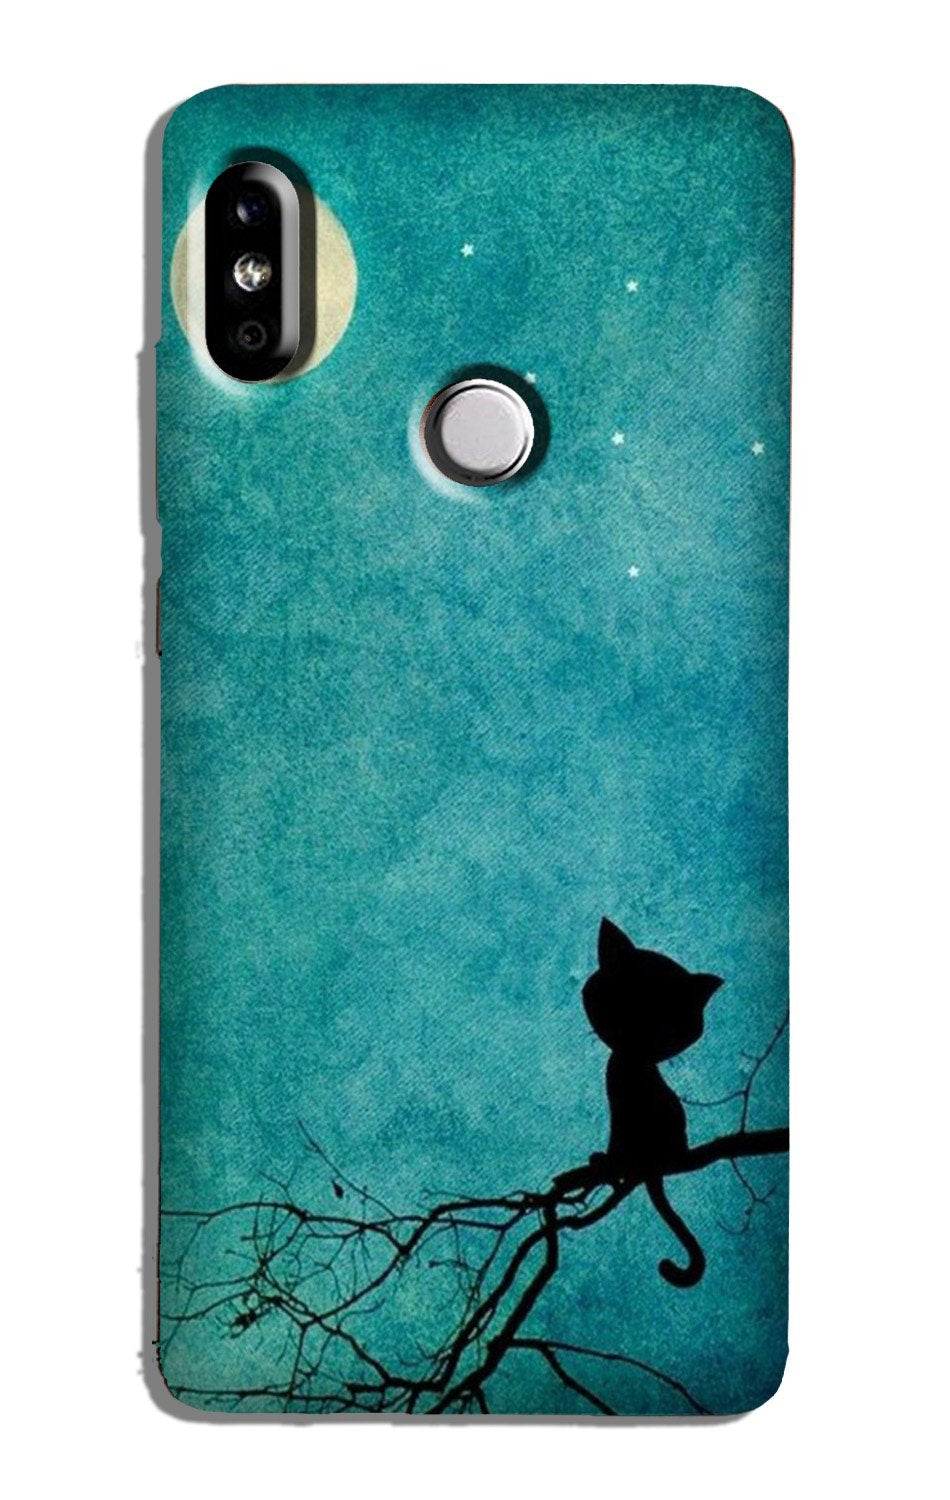 Moon cat Case for Redmi Note 5 Pro